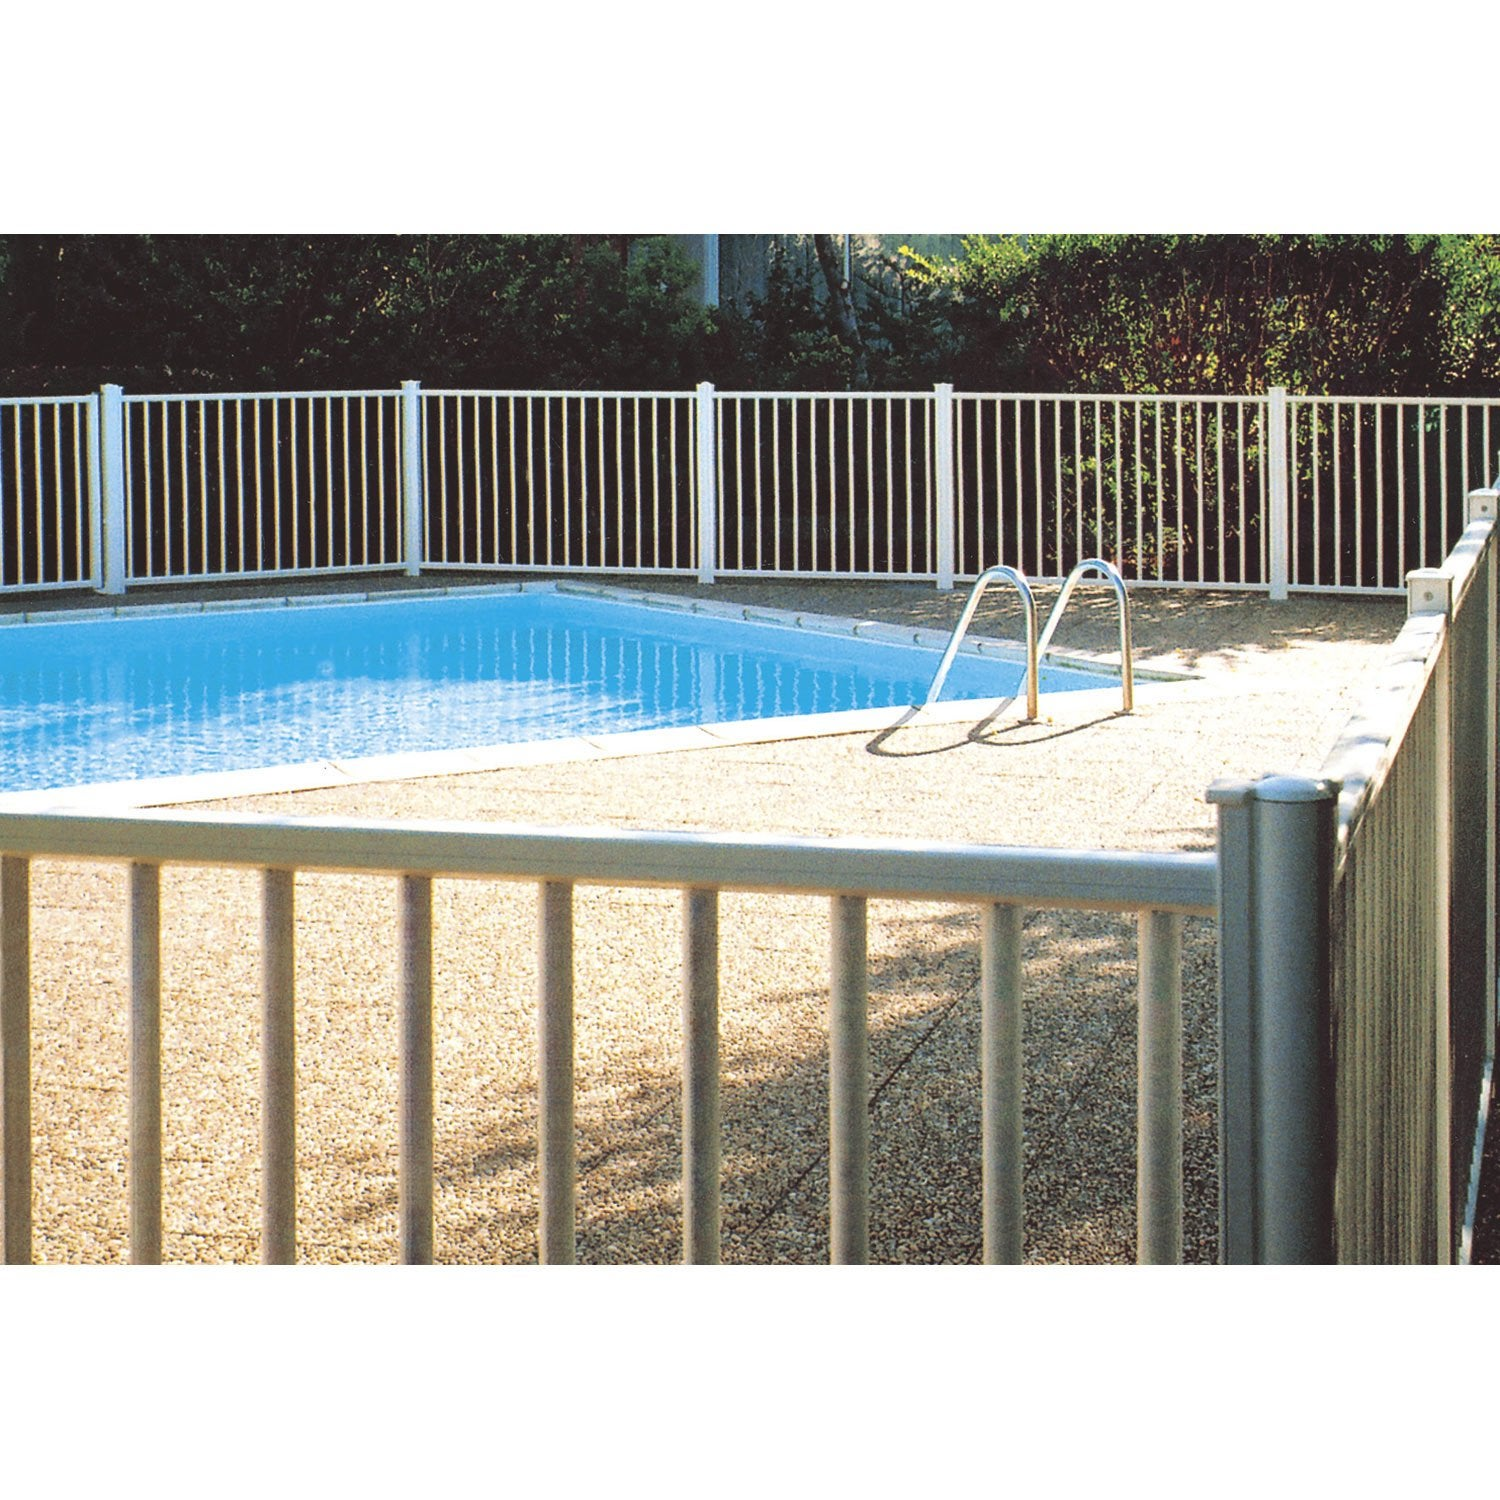 Barri re pour piscine aluminium issambres blanc 9010 h for Cloture pour piscine